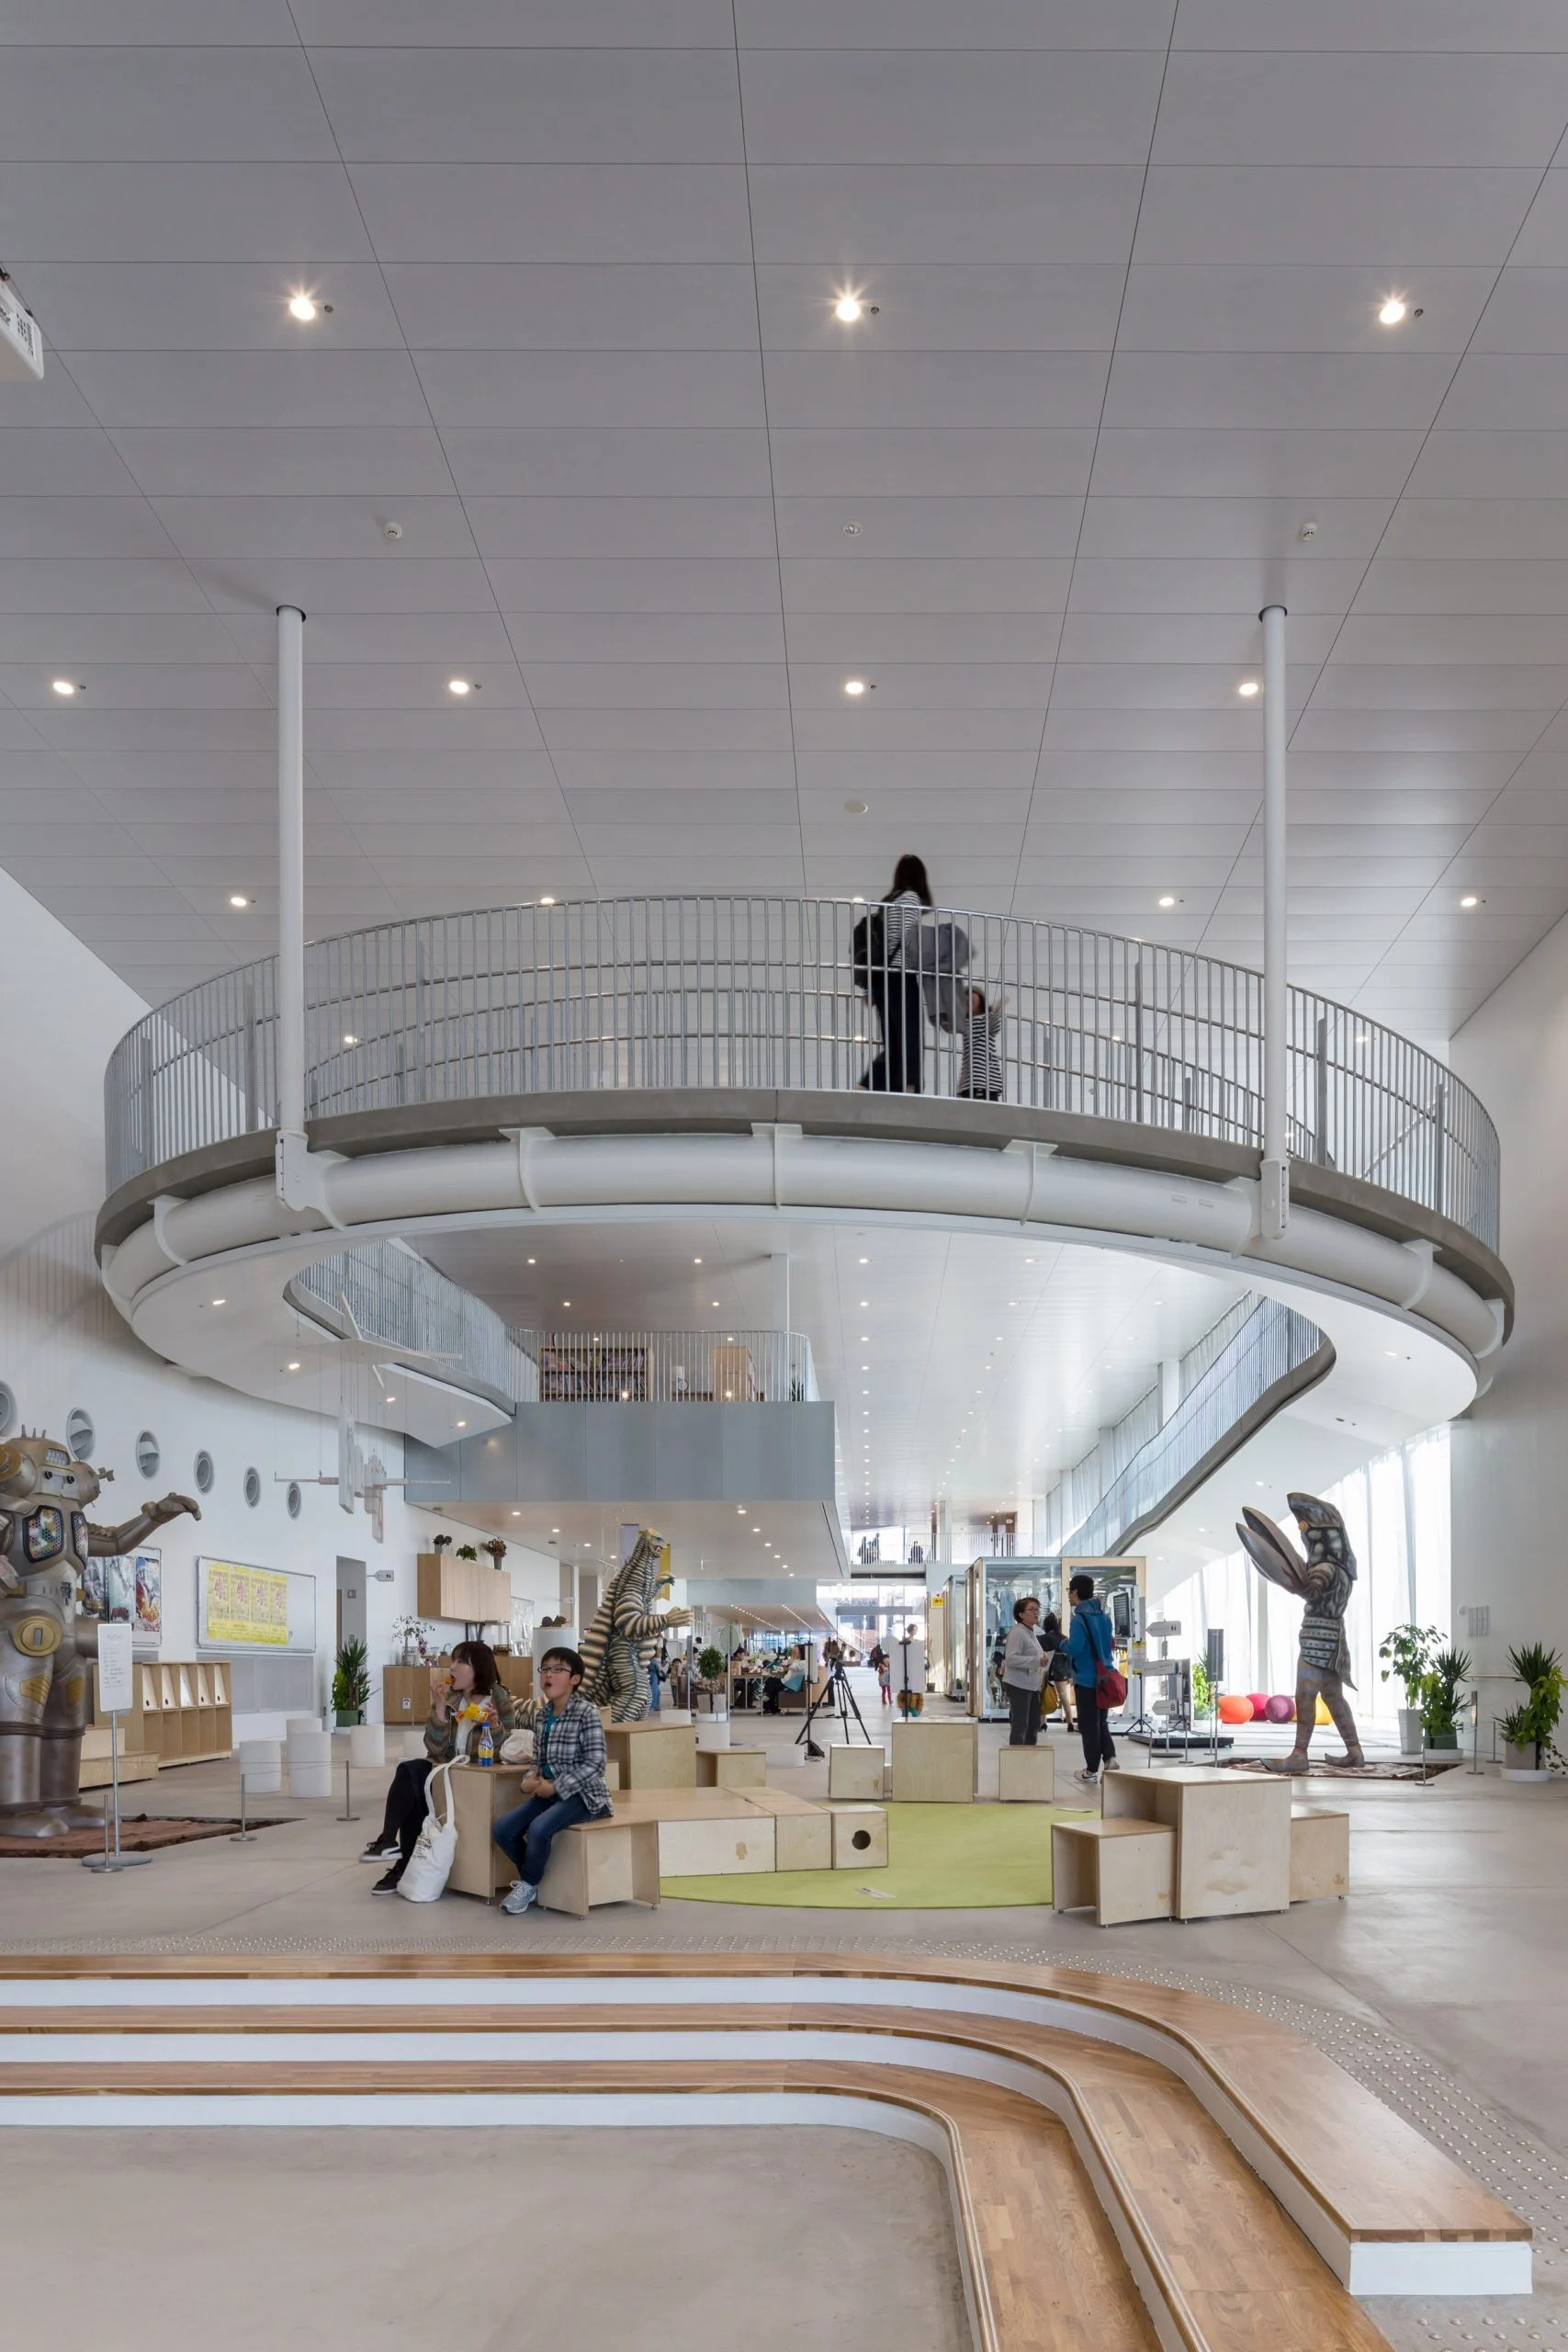 A curved ramp leads visitors between floors at The Sukagawa Community Center